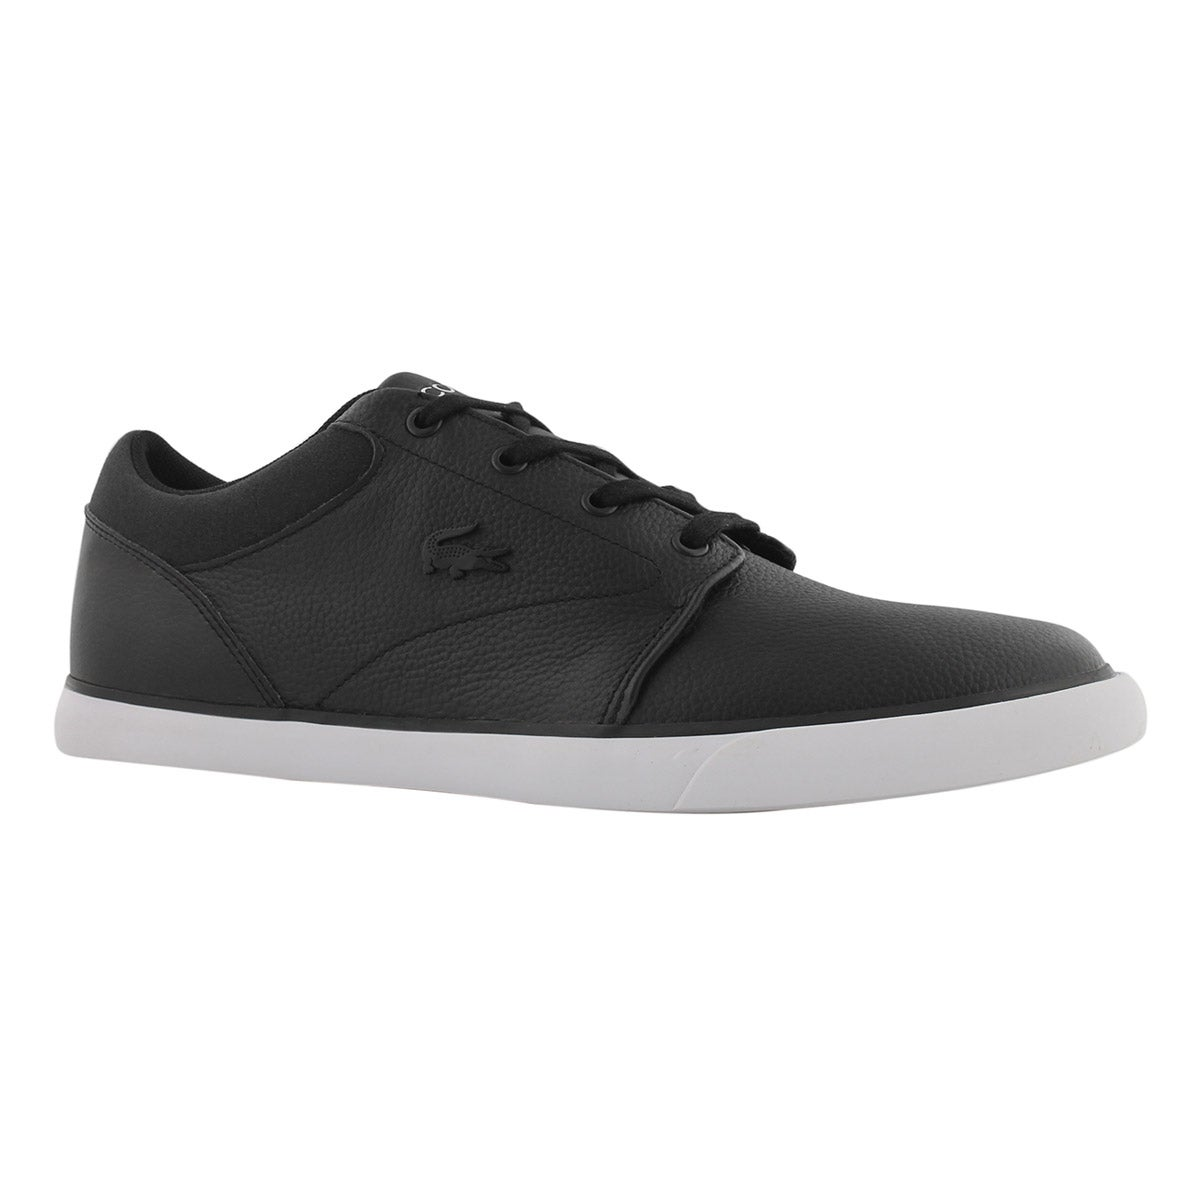 Men's MINZAH 318 black/white fashion sneaker